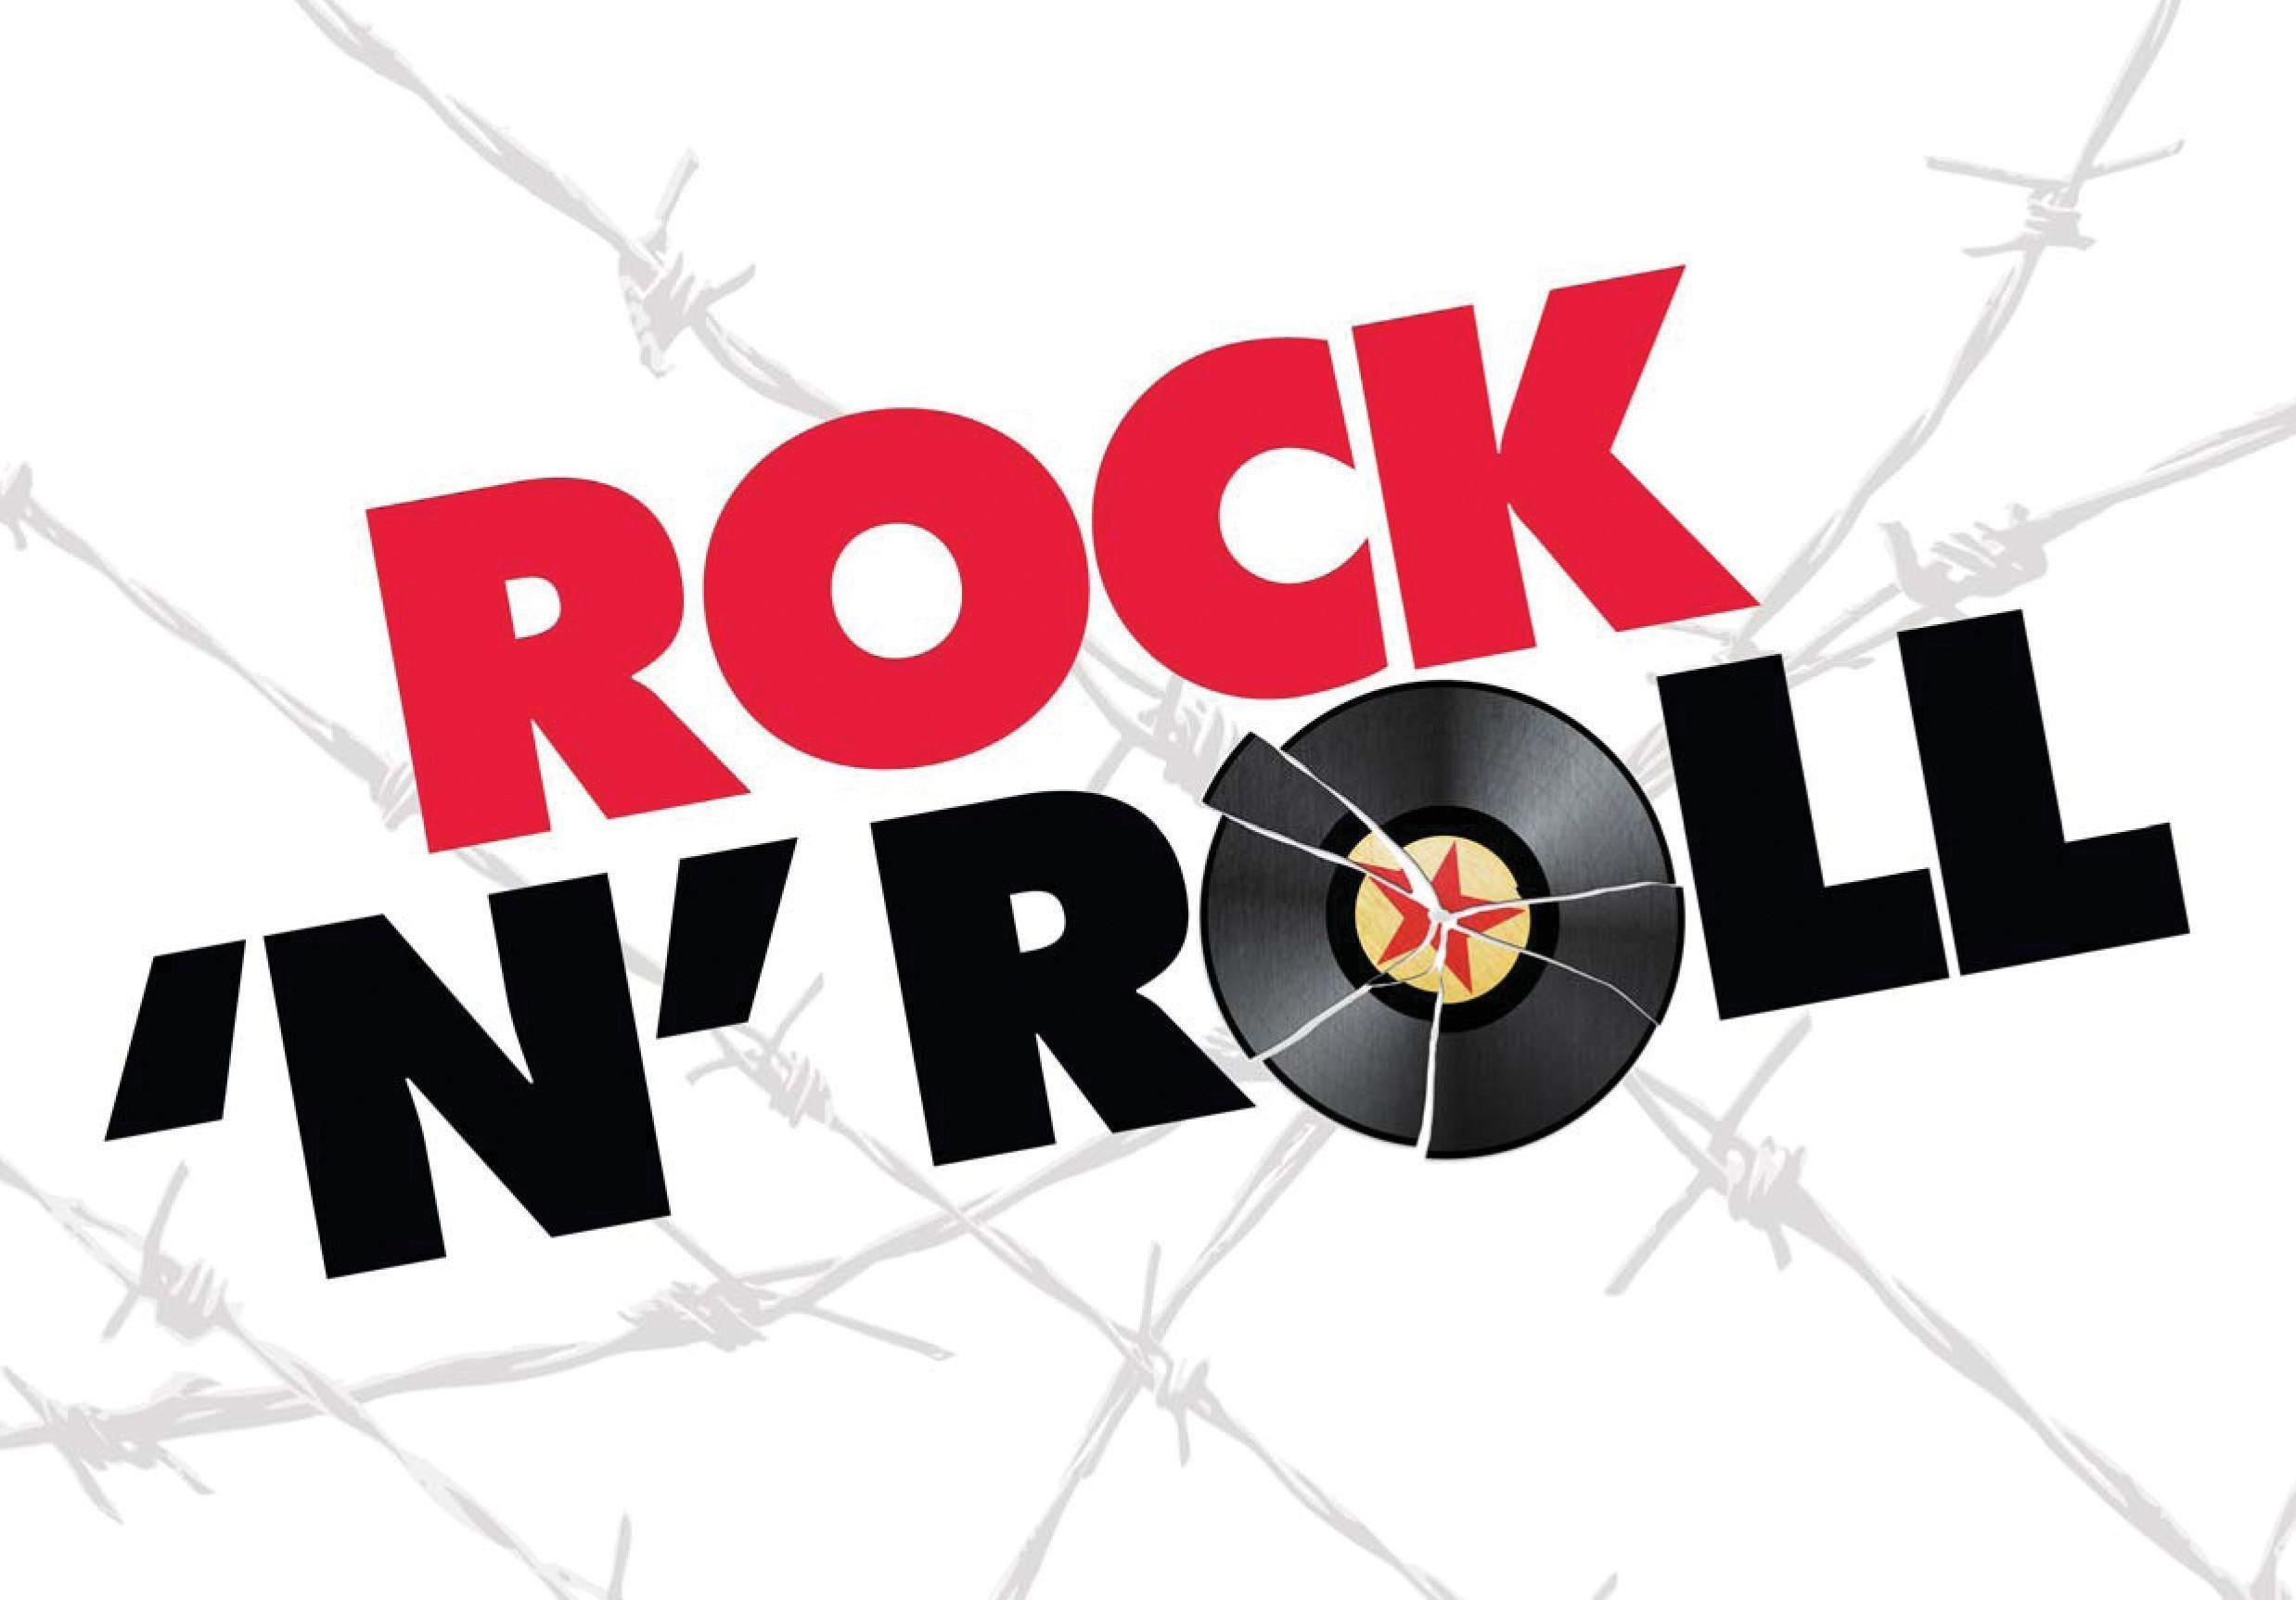 5 Rock'n'roll HD Wallpapers | Backgrounds - Wallpaper Abyss